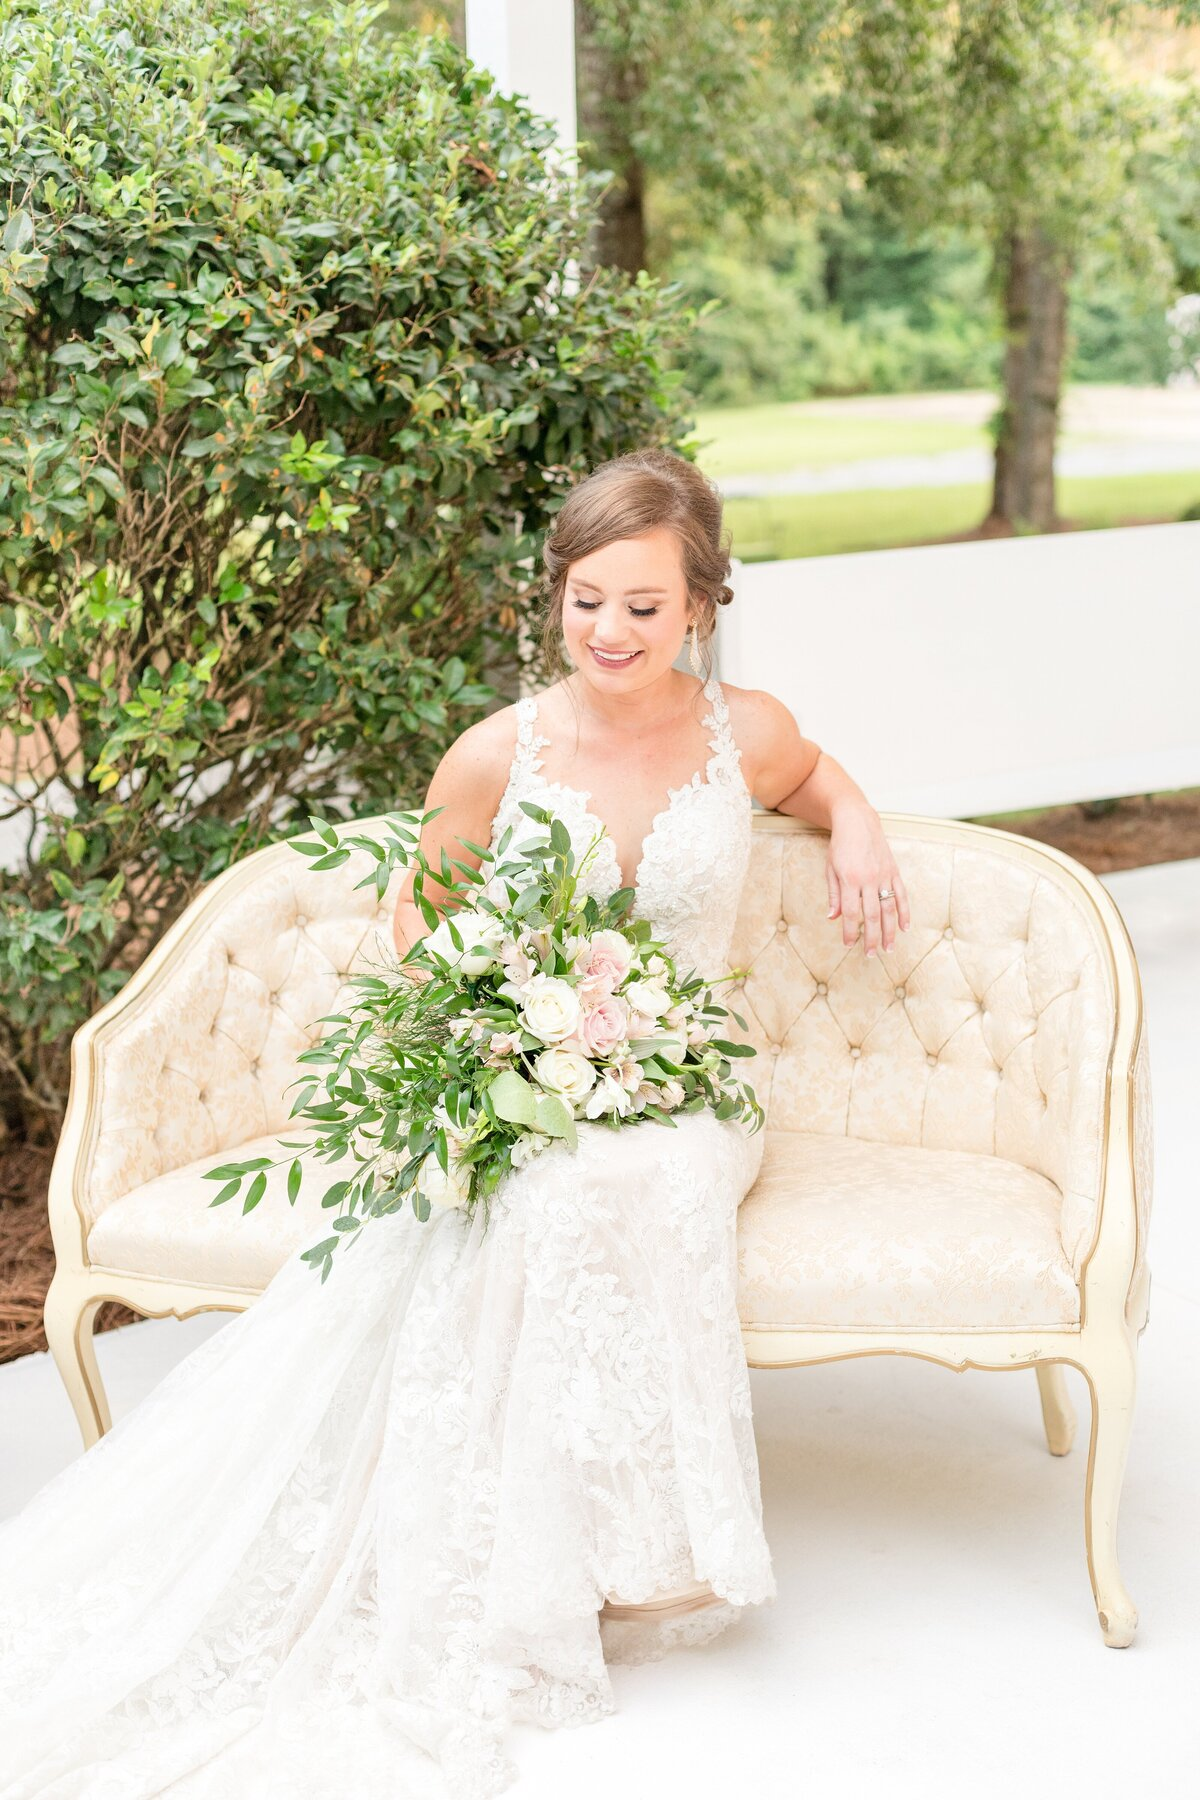 Wedding Gallery - A&J Birmingham, Alabama Wedding & Engagement Photographers - Katie & Alec Photography 85